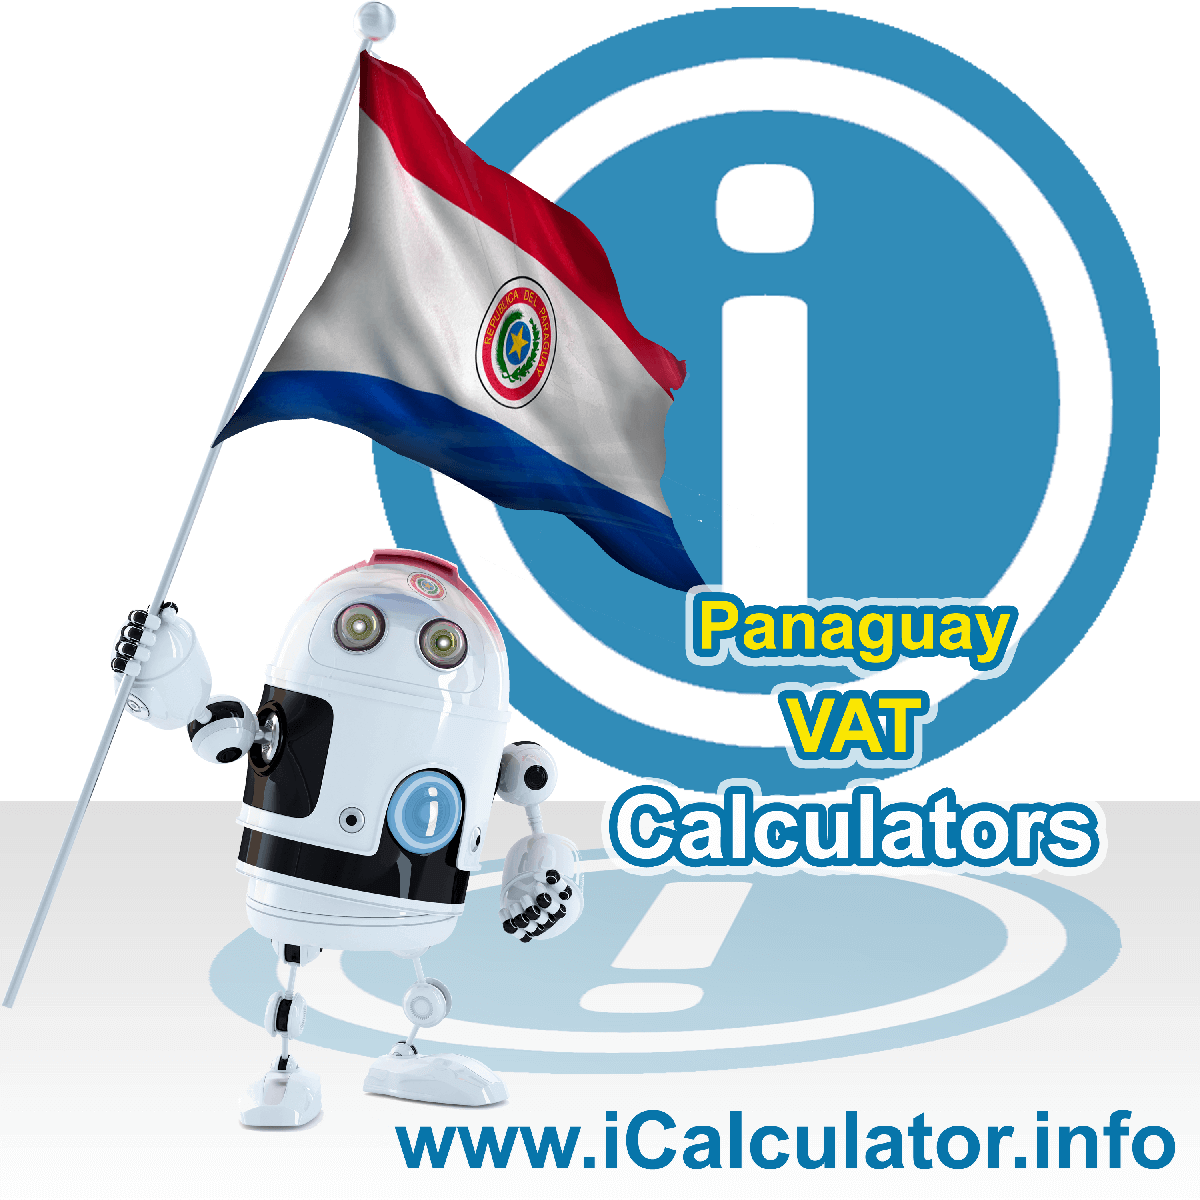 Paraguay VAT Calculator. This image shows the Paraguay flag and information relating to the VAT formula used for calculating Value Added Tax in Paraguay using the Paraguay VAT Calculator in 2020